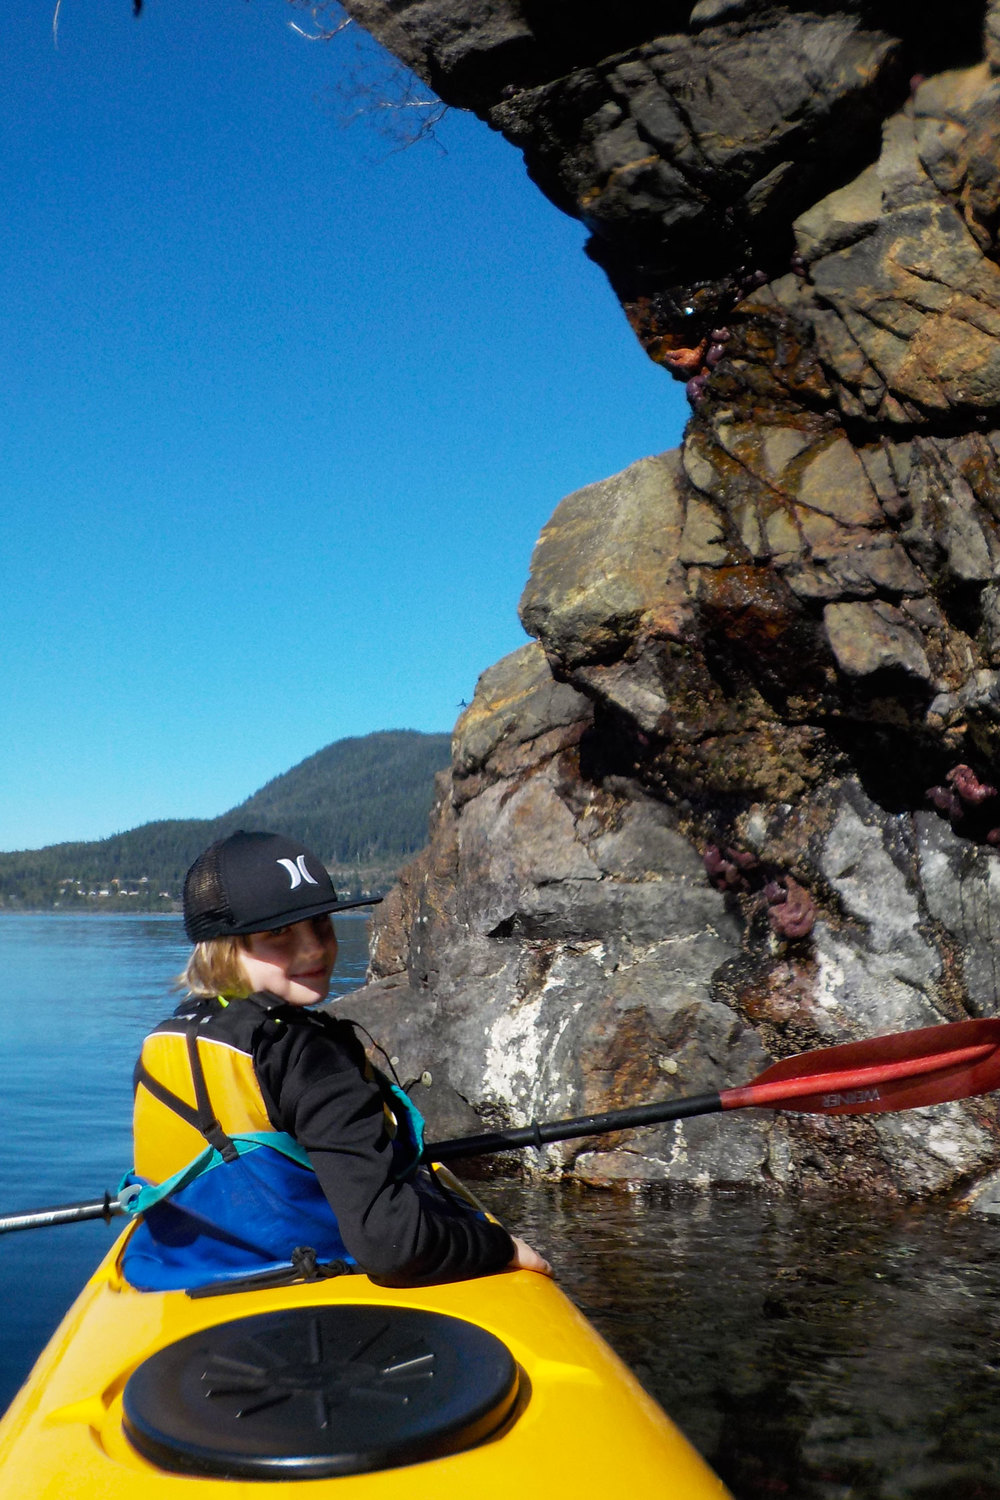 Orcas Cove has an amazing 20 foot intertidal range to explore by kayak.